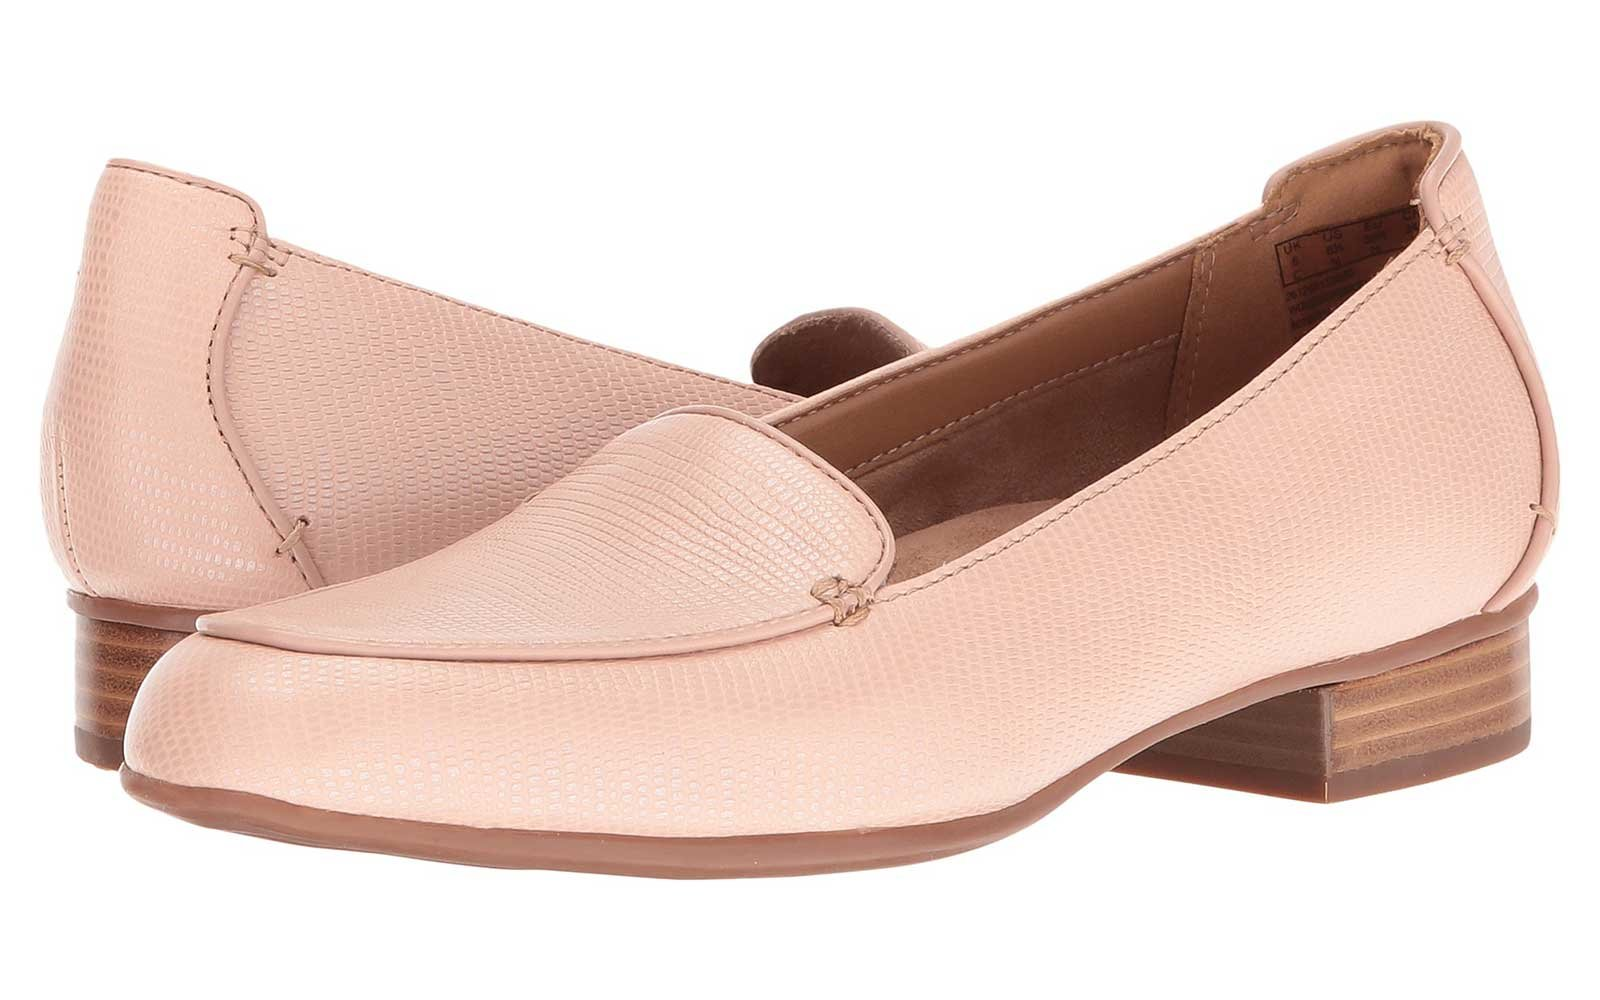 Millennial Pink Loafers